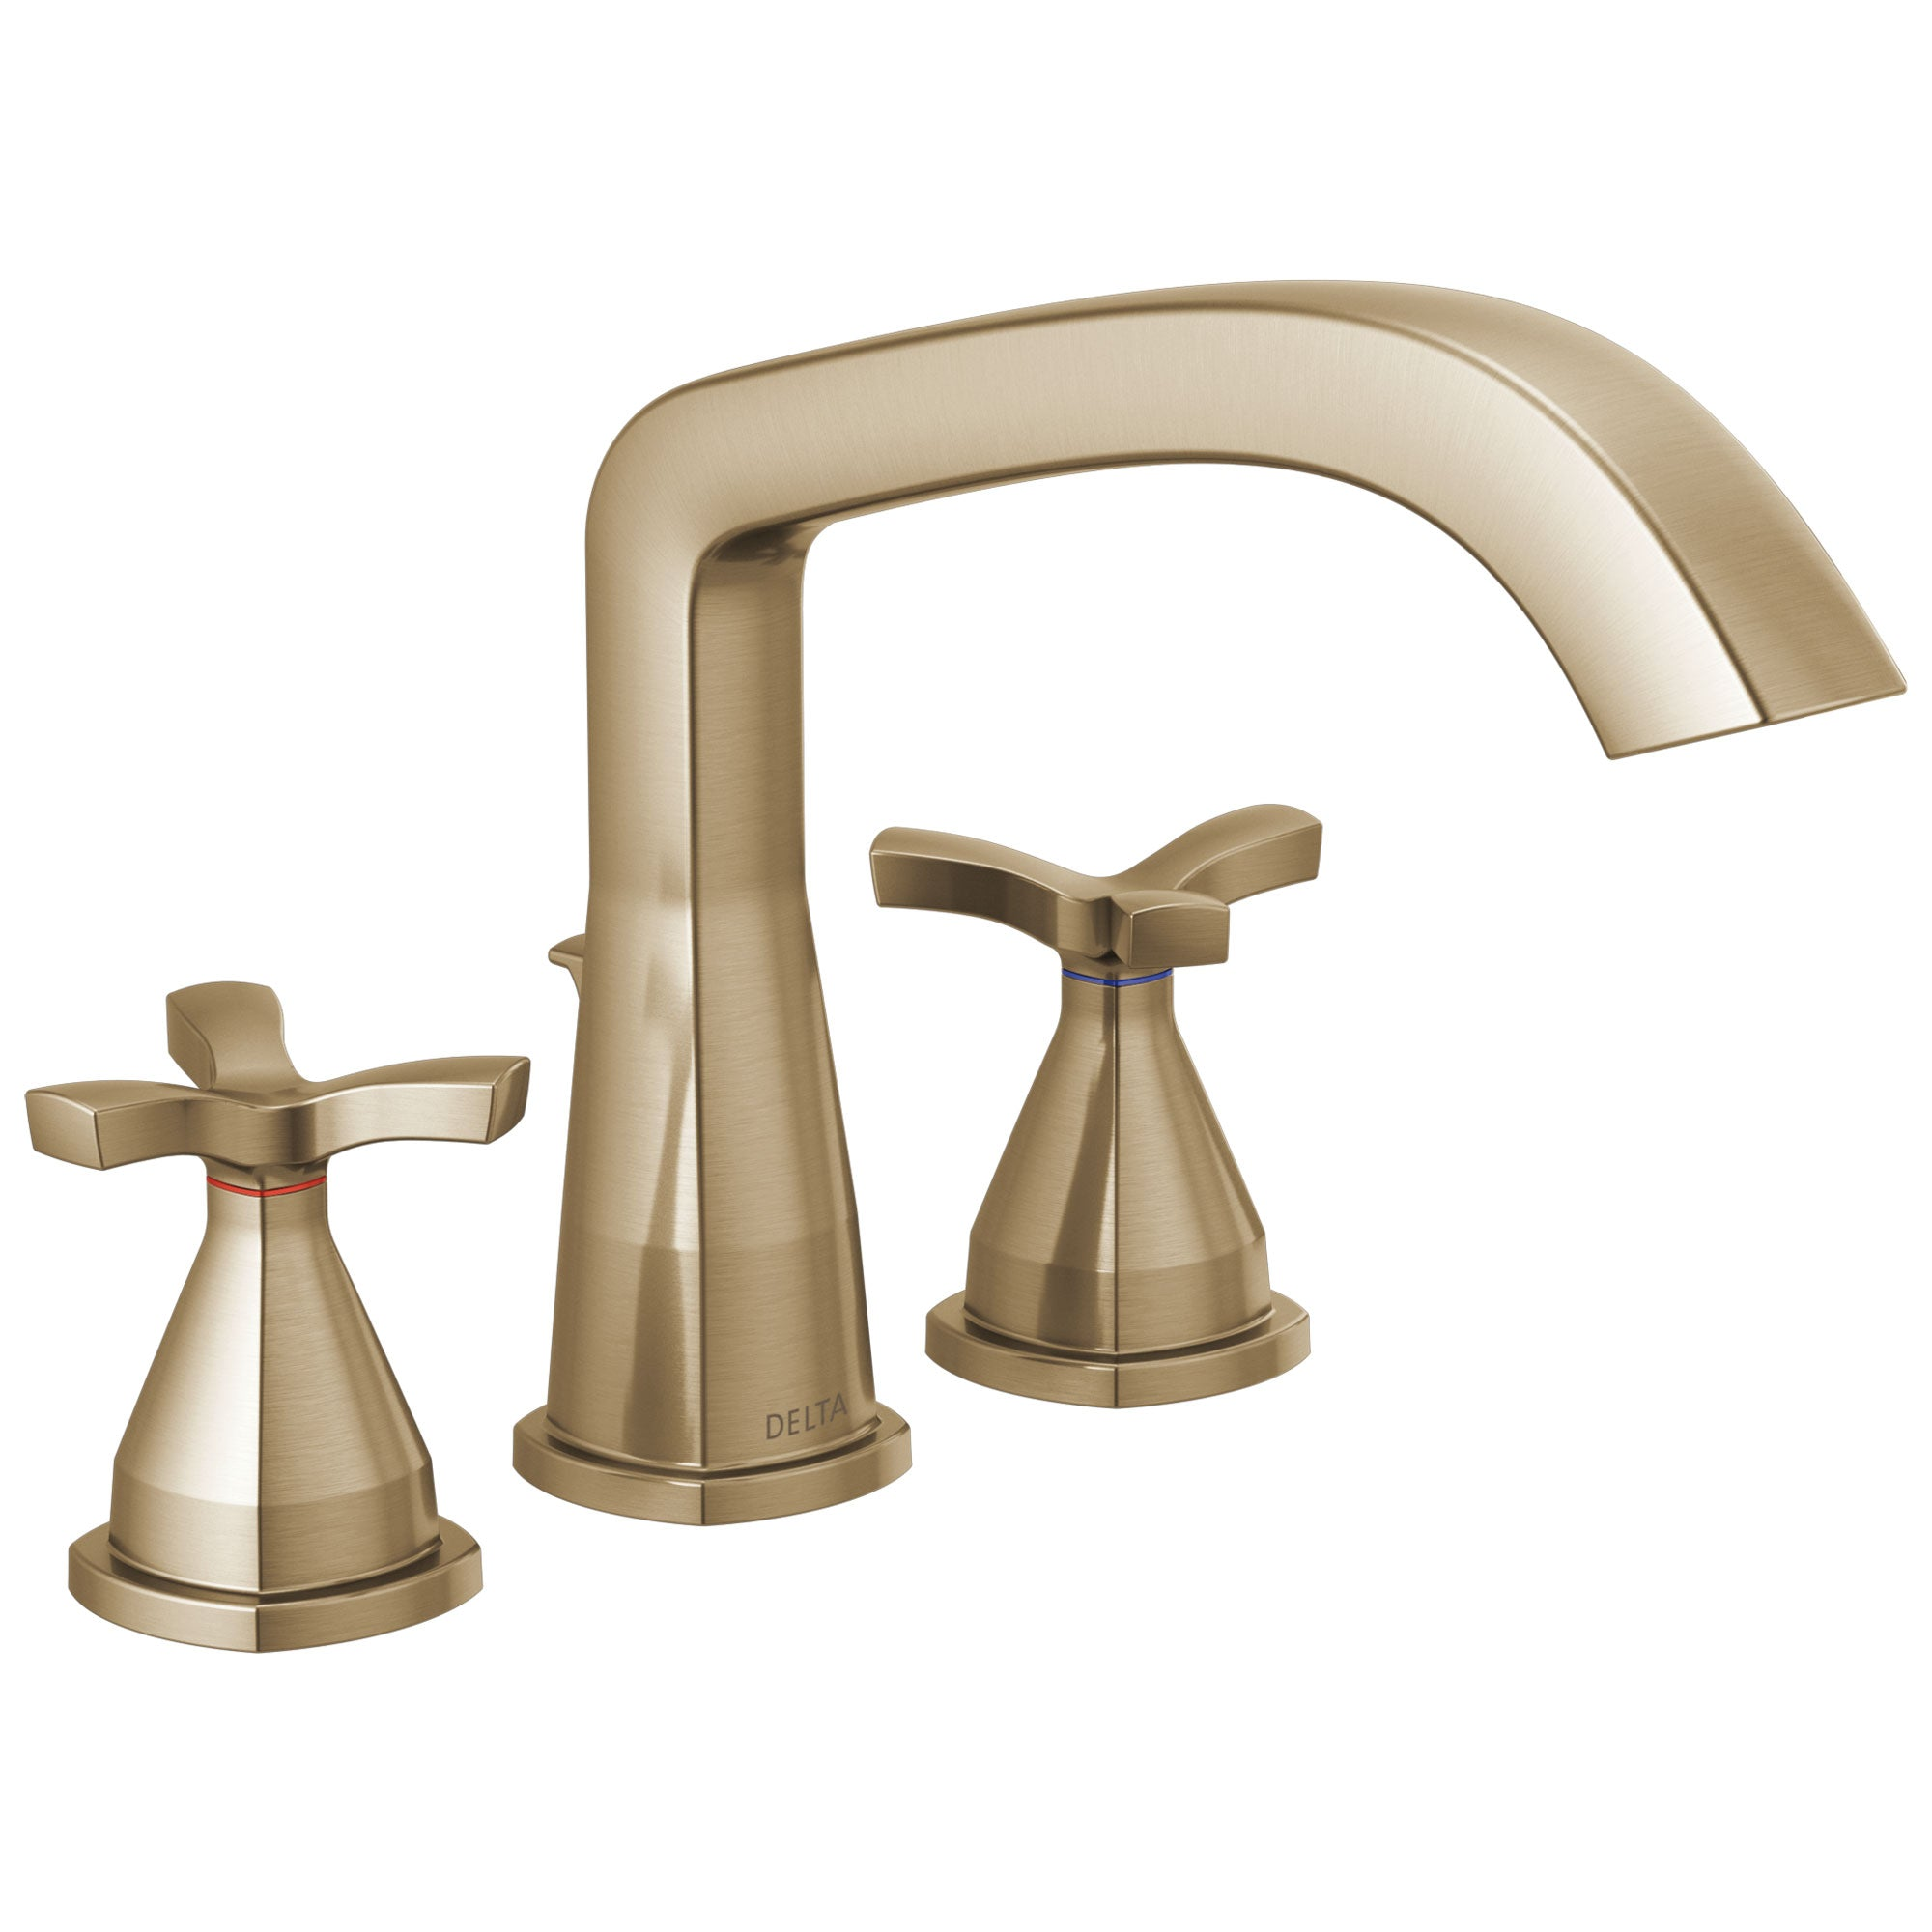 Delta Stryke Champagne Bronze Finish Three Hole Cross Handle Roman Tub Filler Faucet Trim Kit (Requires Valve) DT27766CZ